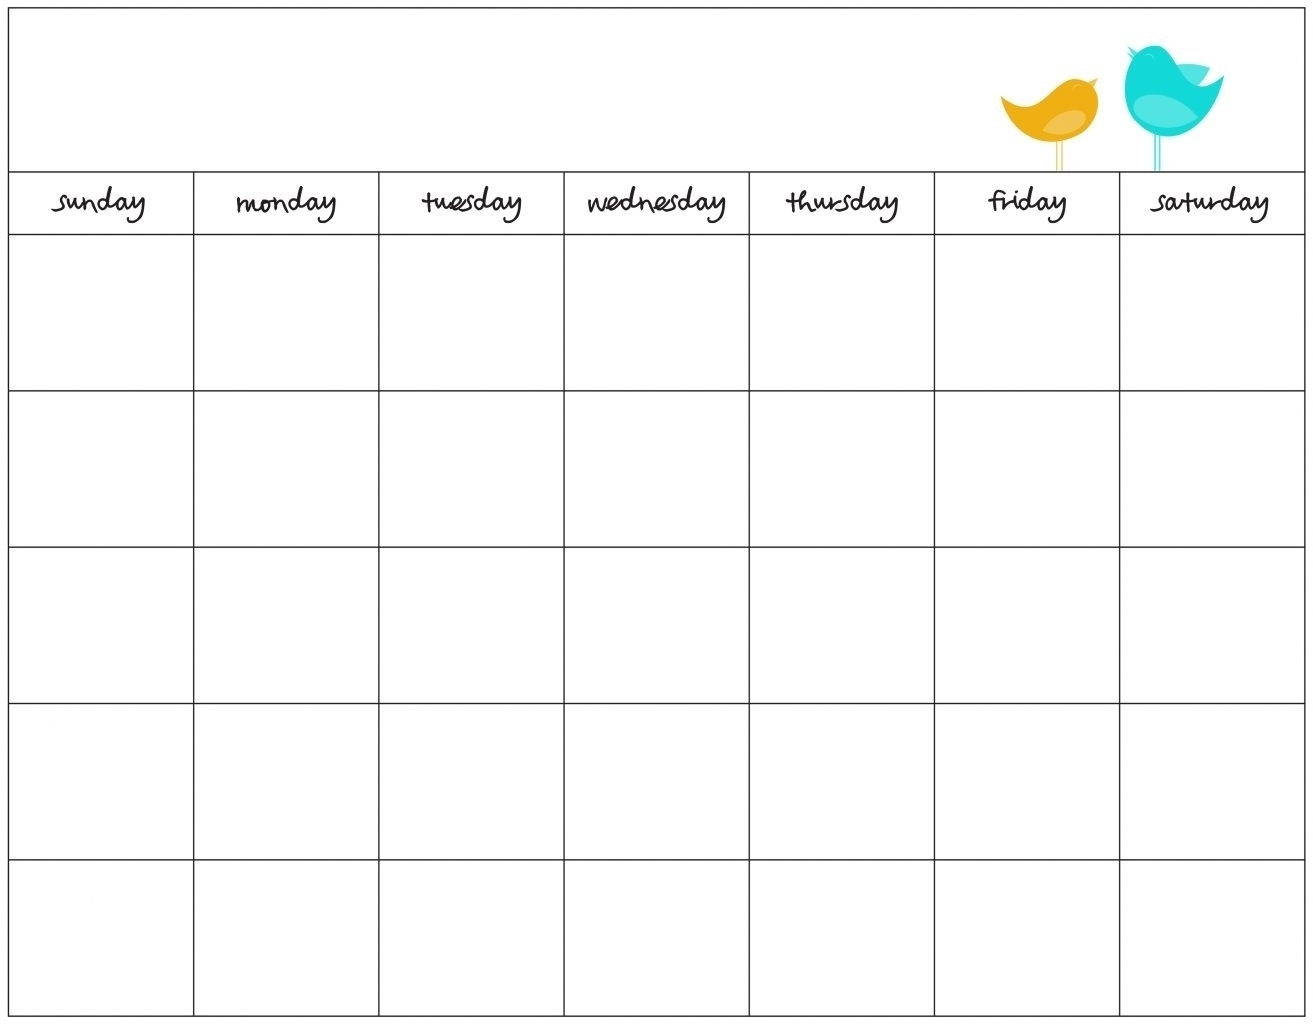 Free Day Blank Calendar Week Template Ble | Smorad with regard to Blank 7 Day Calendar Template